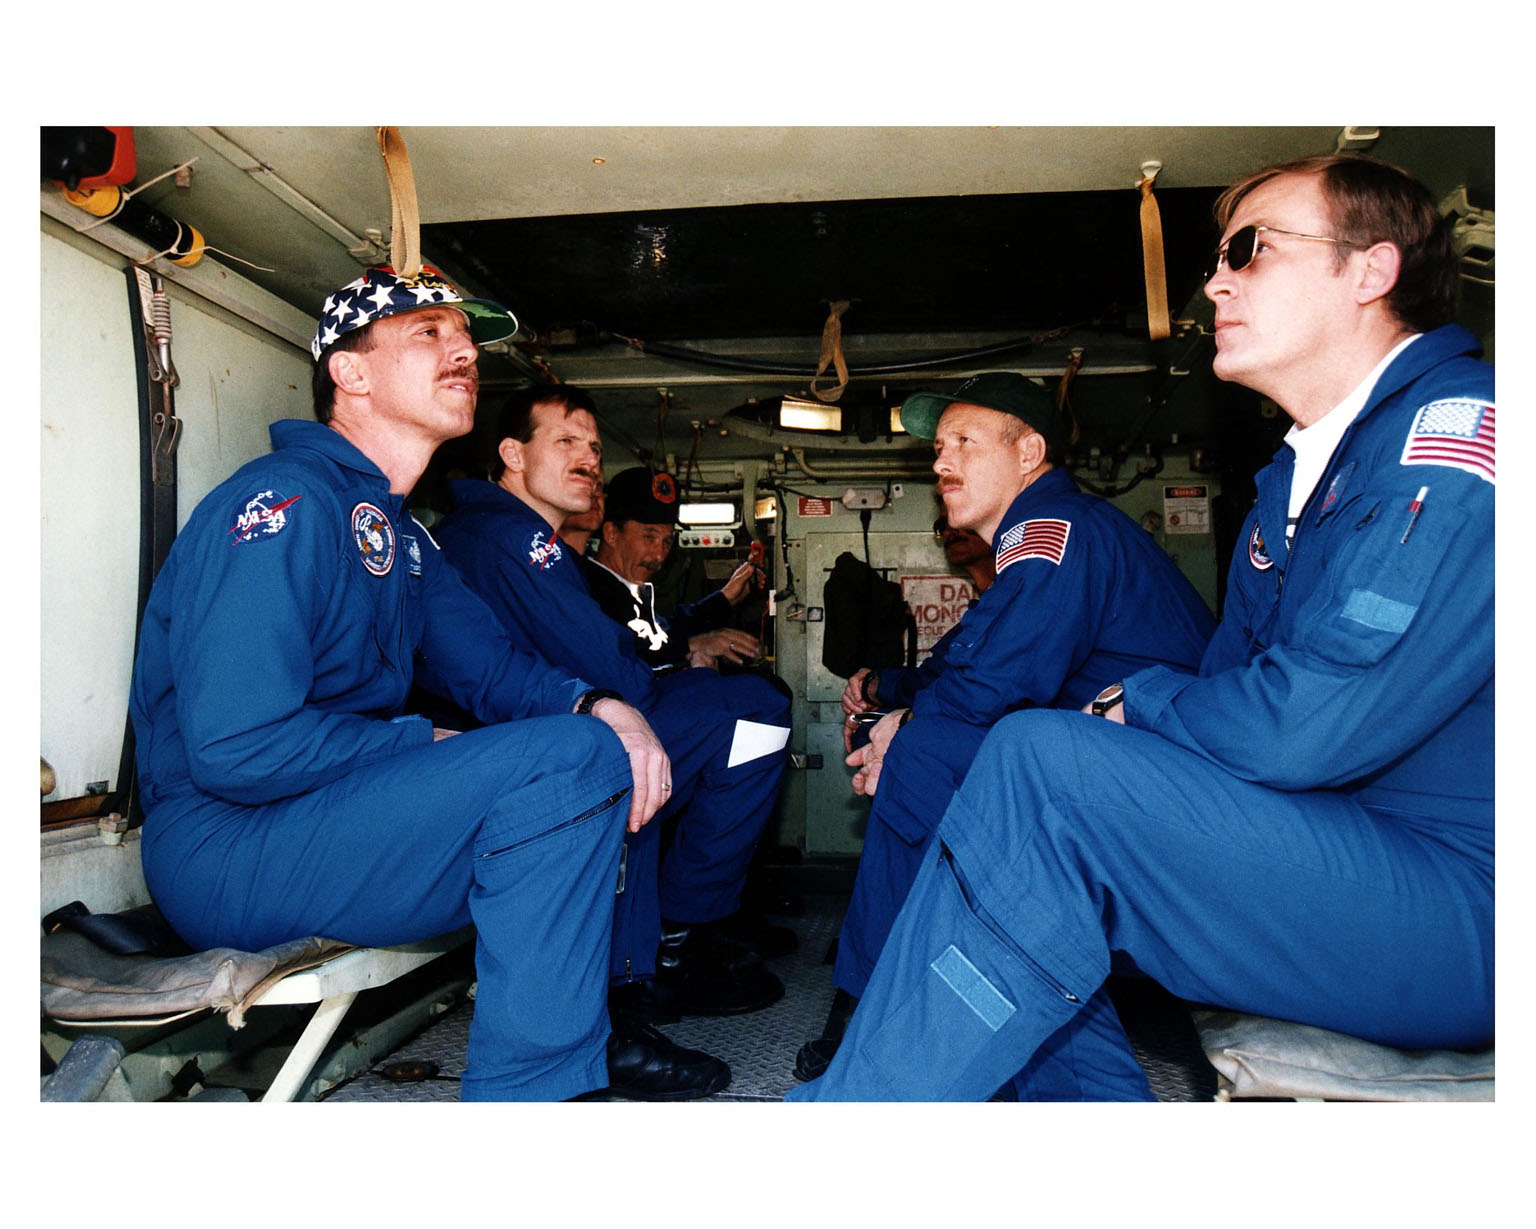 """STS-82 crew members ride in and learn how to operate an M-113 armored personnel carrier during Terminal Countdown Demonstration Test (TCDT) activities prior to launch. The four crew members dressed in their blue flight suits and visible here are, from left, Pilot Scott J. """"Doc"""" Horowitz, Mission Specialist Joseph R. """"Joe"""" Tanner, Mission Commander Kenneth D. Bowersox and Payload Commander Mark C. Lee. George Hoggard, a training officer with KSC Fire Services, is visible in the background at left. The 10-day STS-82 flight, which will be the second Hubble Space Telescope servicing mission, is targeted for a Feb. 11 liftoff"""